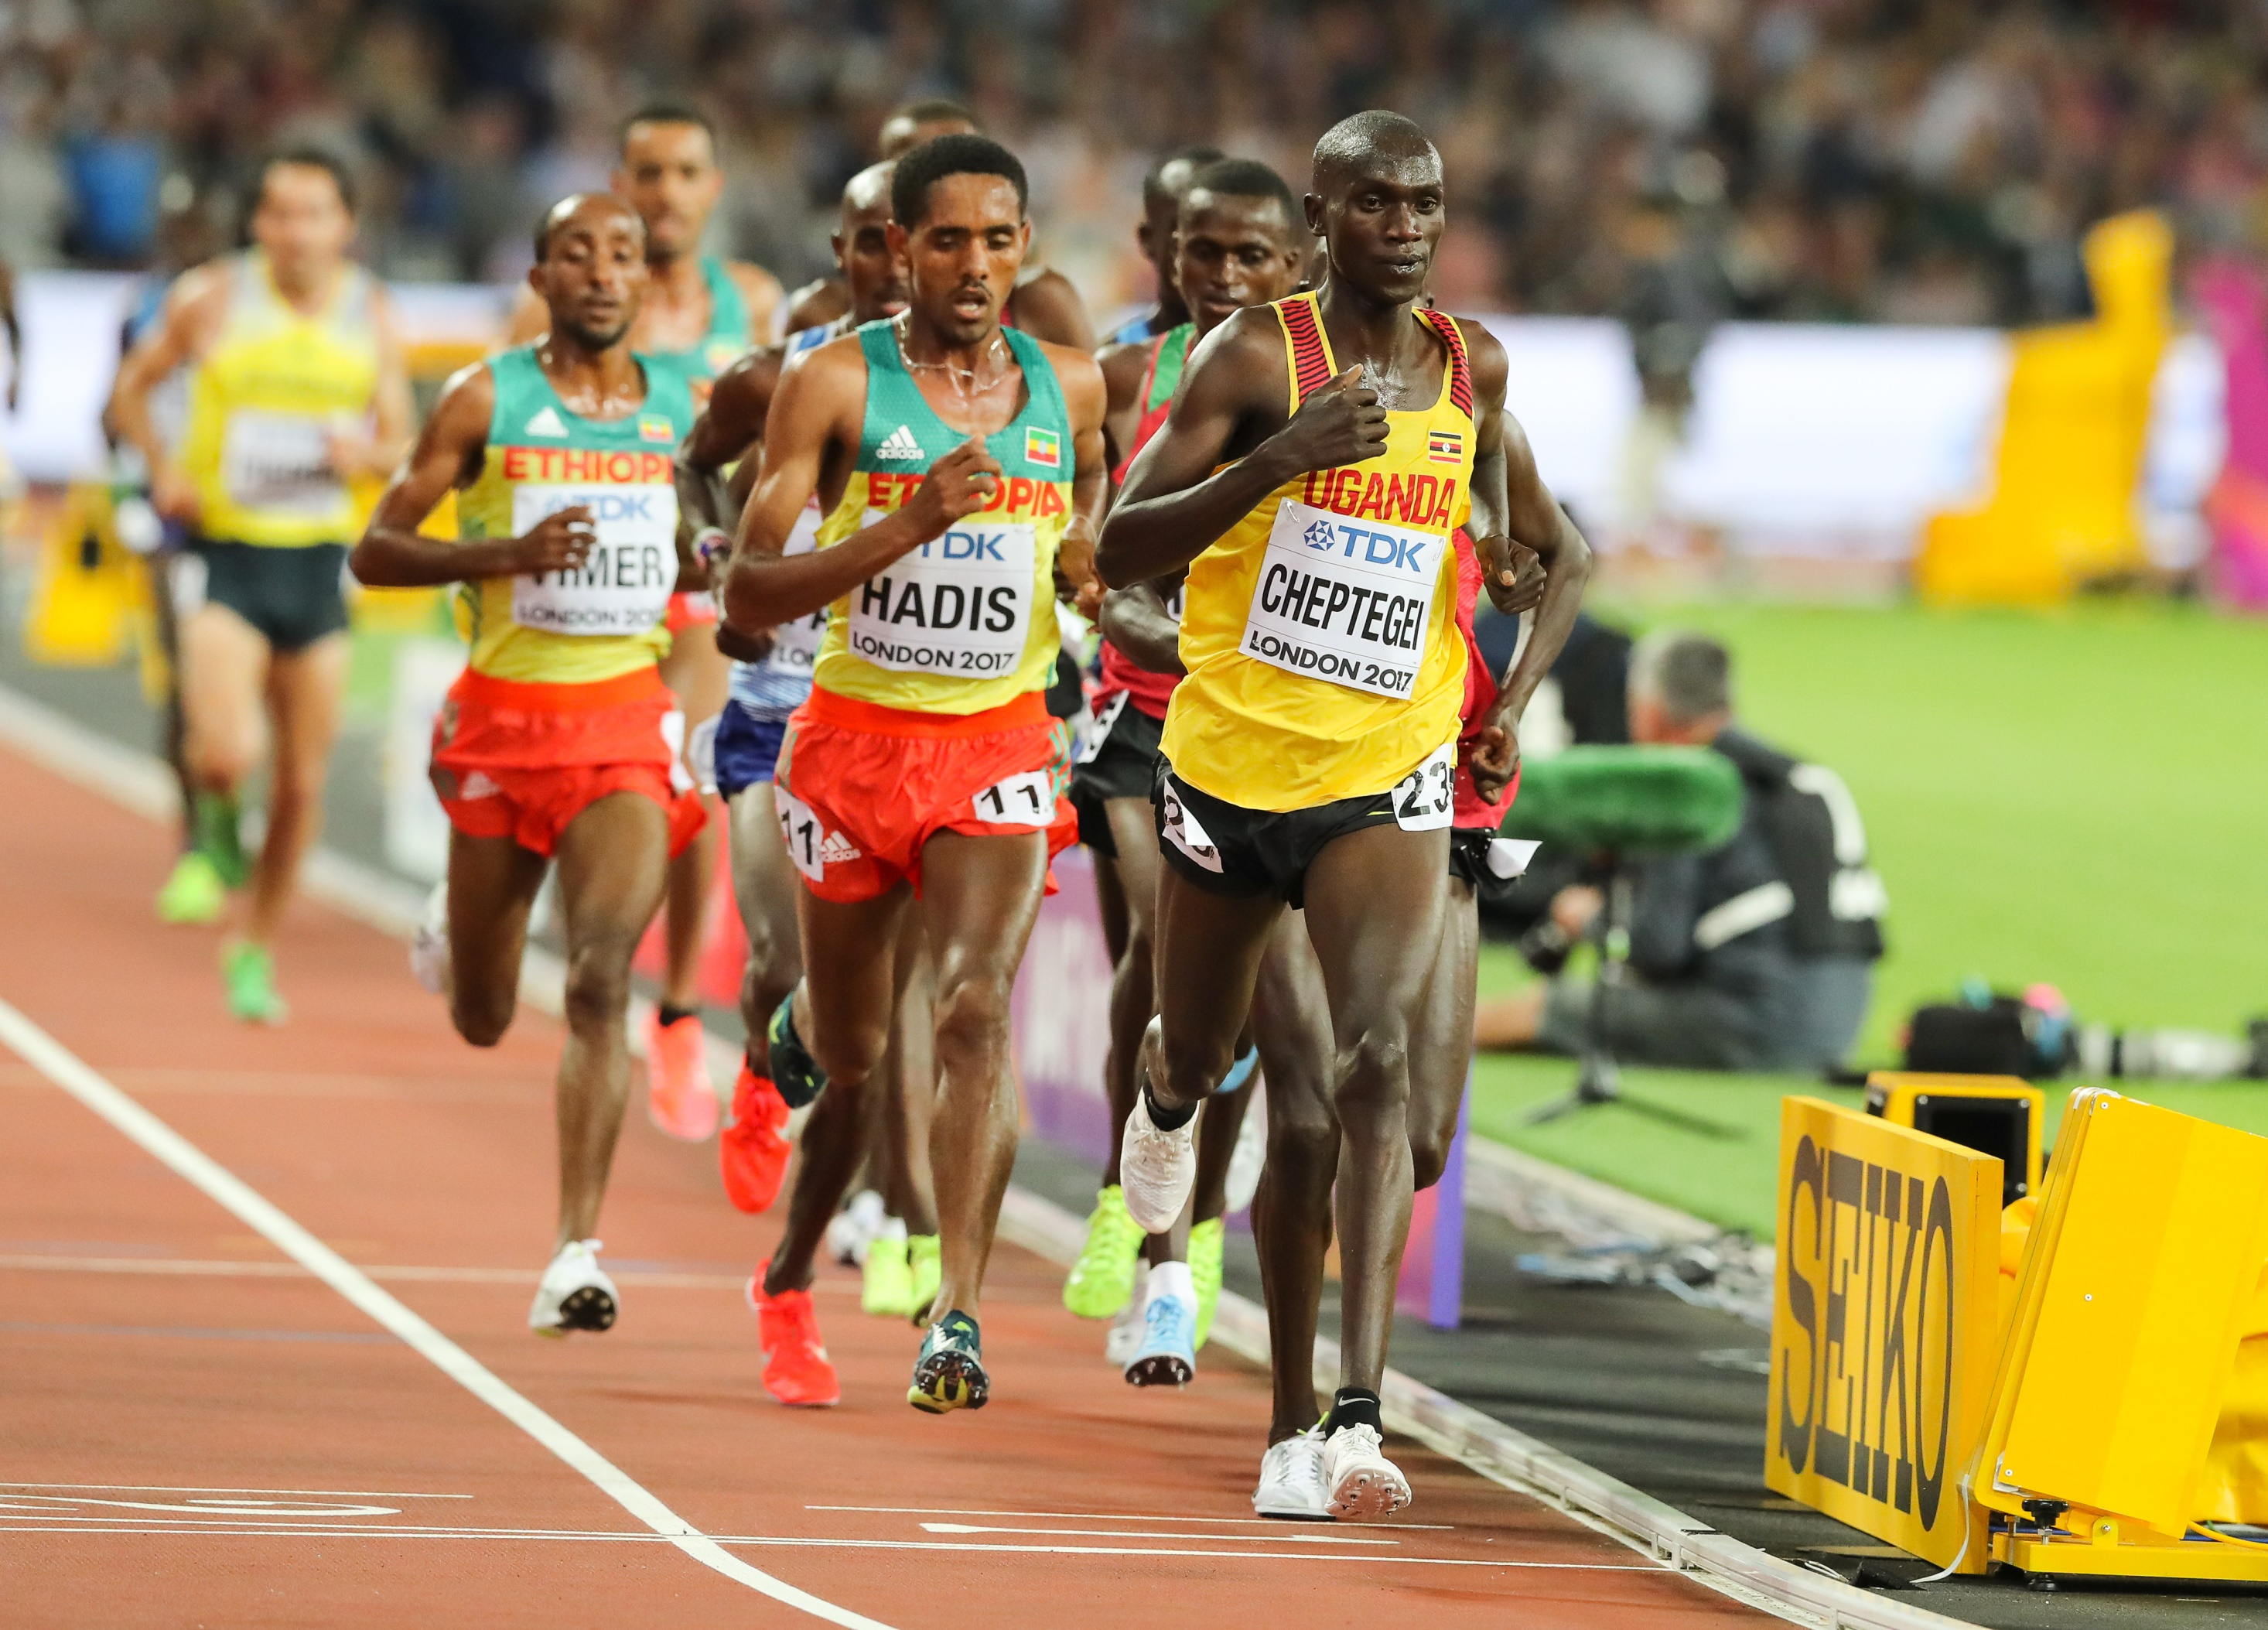 World Championship 10 000m silver medallist, Joshua Cheptegei is the first big name to be announced to compete in the inaugural Athletix Grand Prix Series in March 2018.  The Athletix Grand Prix Series consists of three meetings:  1. Ruimsig Stadium, Johannesburg on Thursday, 01 March 2018, 2. Tuks Stadium, Tshwane on Thursday, 08 March 2018 and 3. Dal Josaphat Stadium, Paarl on Thursday, 22 March 2018.  Cheptegei will be seen in action at the first two meetings.  Seen here:  Joshua Cheptegei in action.  Photo Credit:  Image SA